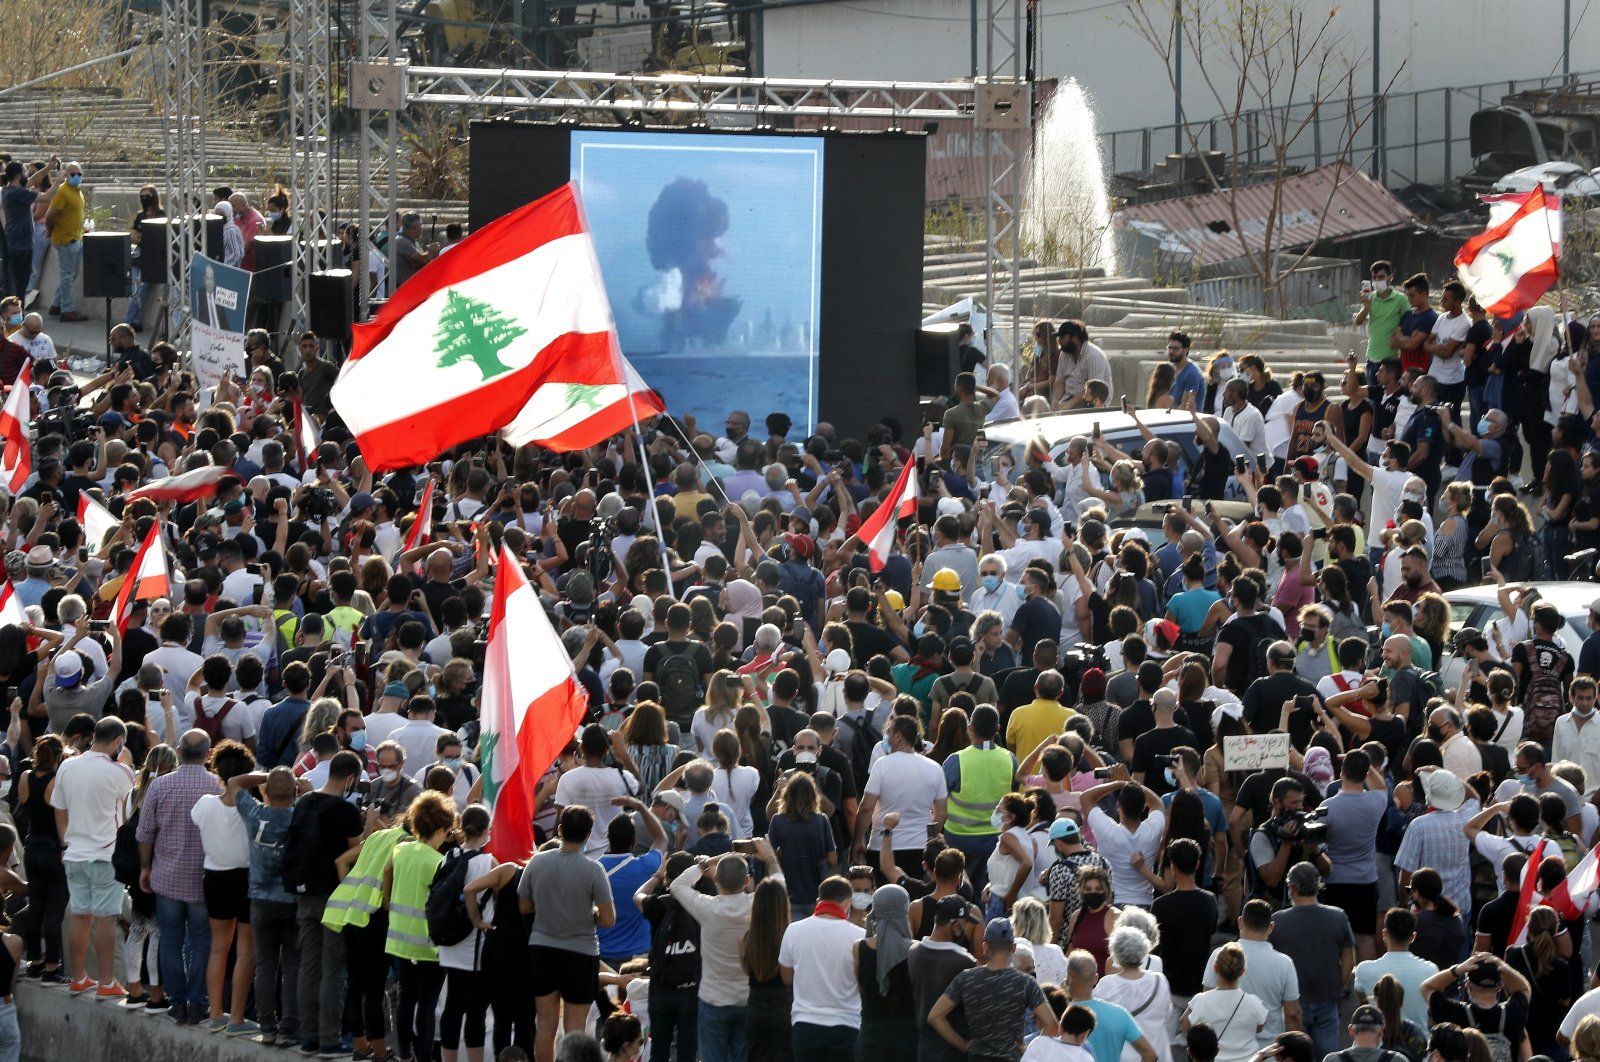 People watch on a giant screen the moment of the massive explosion, as they gather in honor of the victims killed or wounded in the Lebanese capital, in Beirut, Lebanon, Aug. 11, 2020.   (AP Photo)